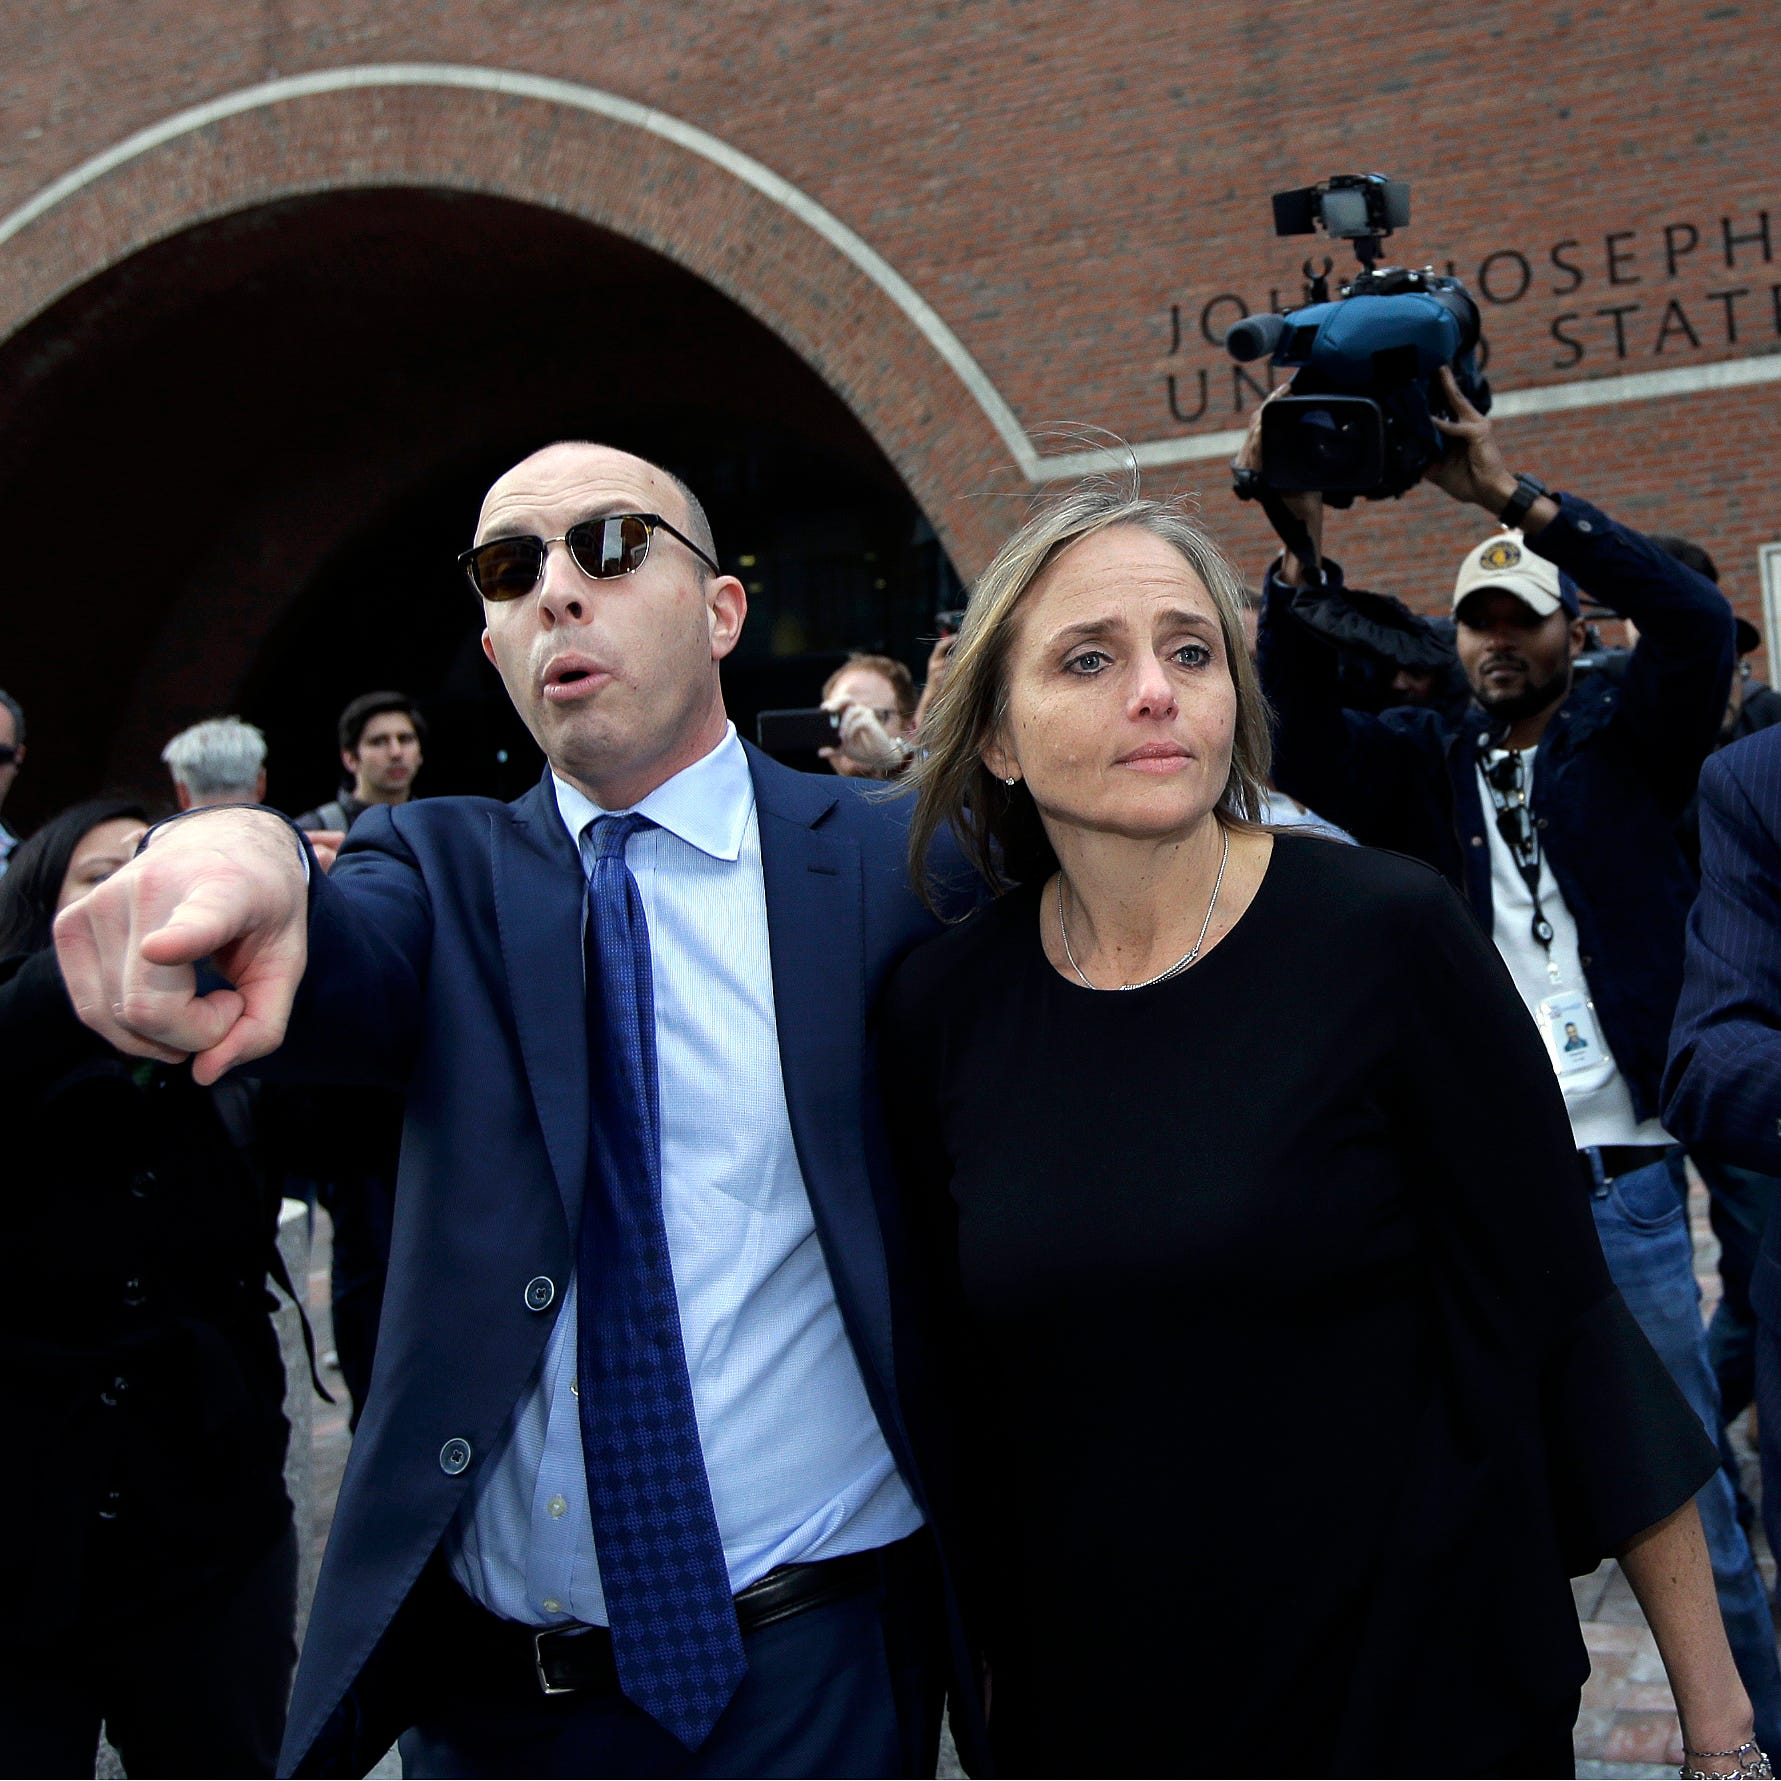 District Court Judge Shelley M. Richmond Joseph, center, departs federal court, Thursday, April 25, 2019, in Boston after facing obstruction of justice charges for allegedly helping a man in the country illegally evade immigration officials as he left her Newton, Mass., courthouse after a hearing in 2018. (AP Photo/Steven Senne) ORG XMIT: BX105